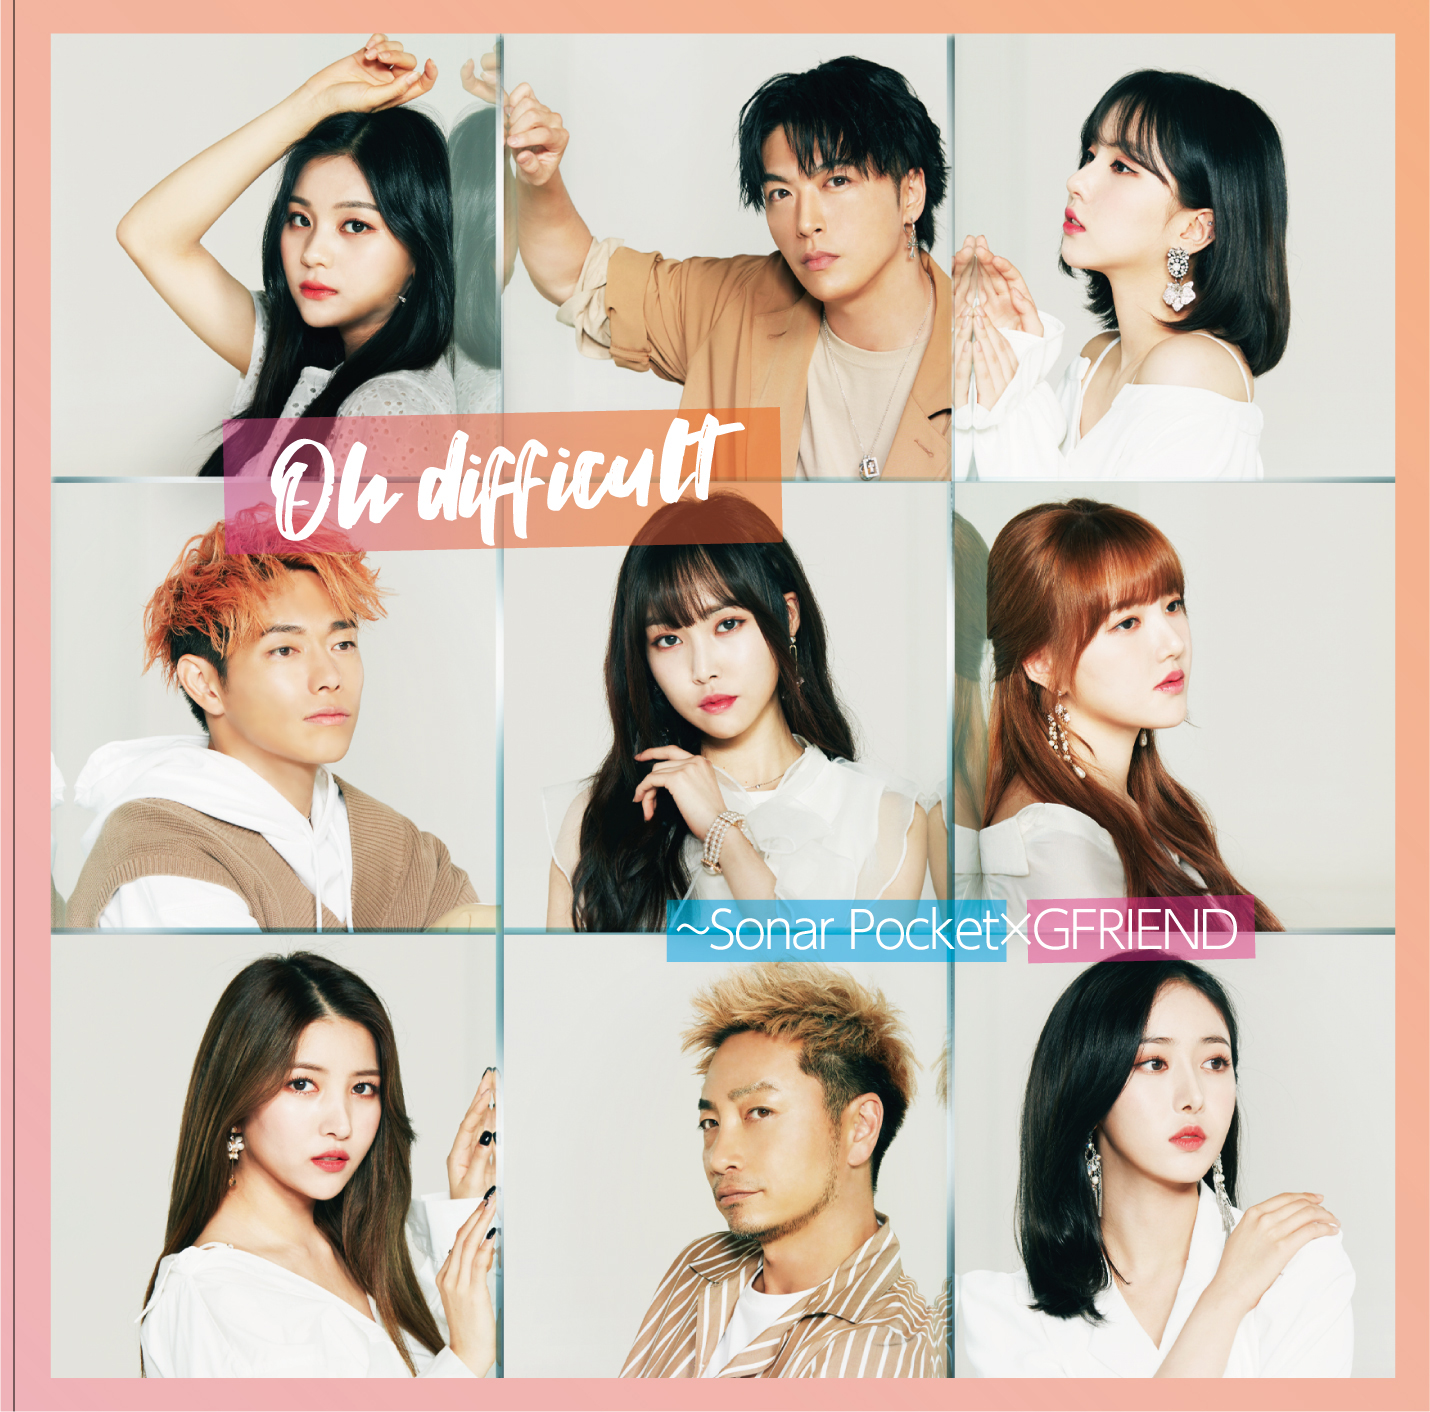 Sonar Pocket「Oh difficult ~Sonar Pocket×GFRIEND」通常盤